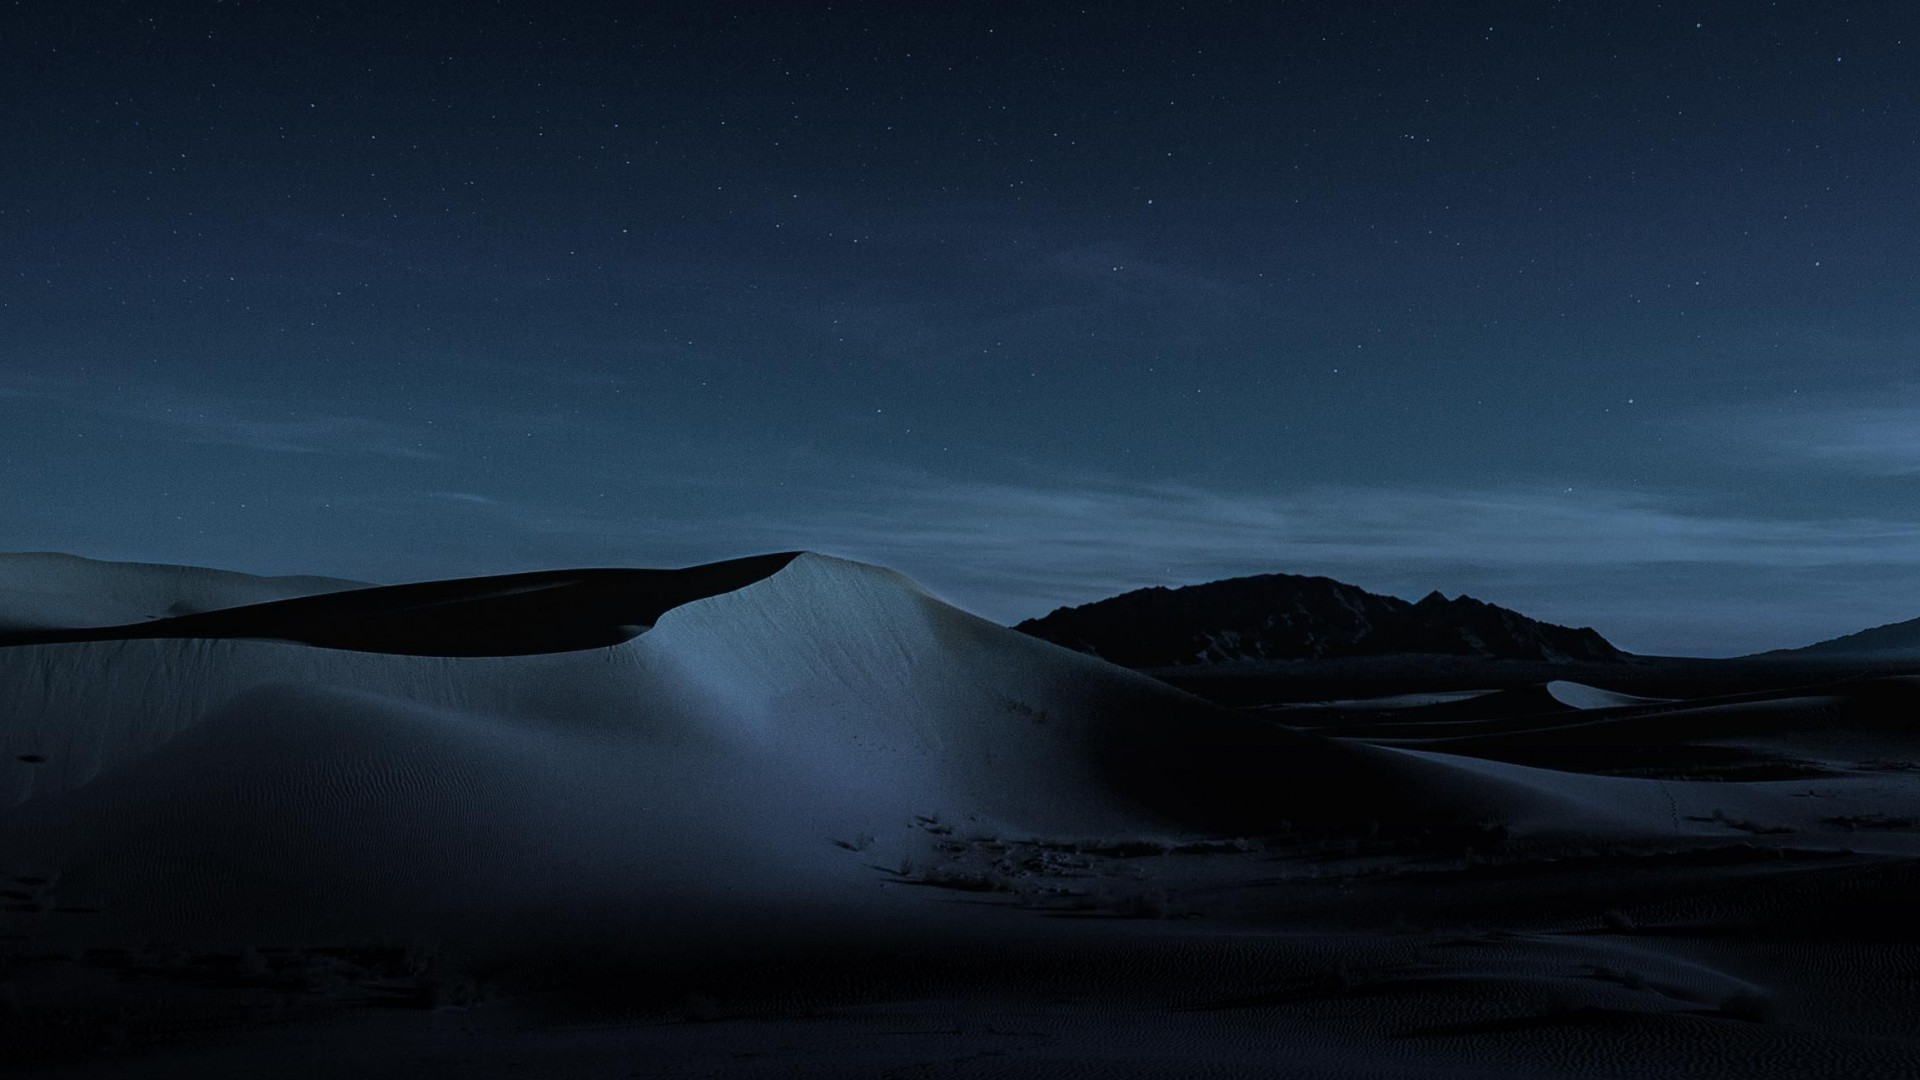 Wallpaper macOS Mojave, Night, Dunes, 4K, OS #18885